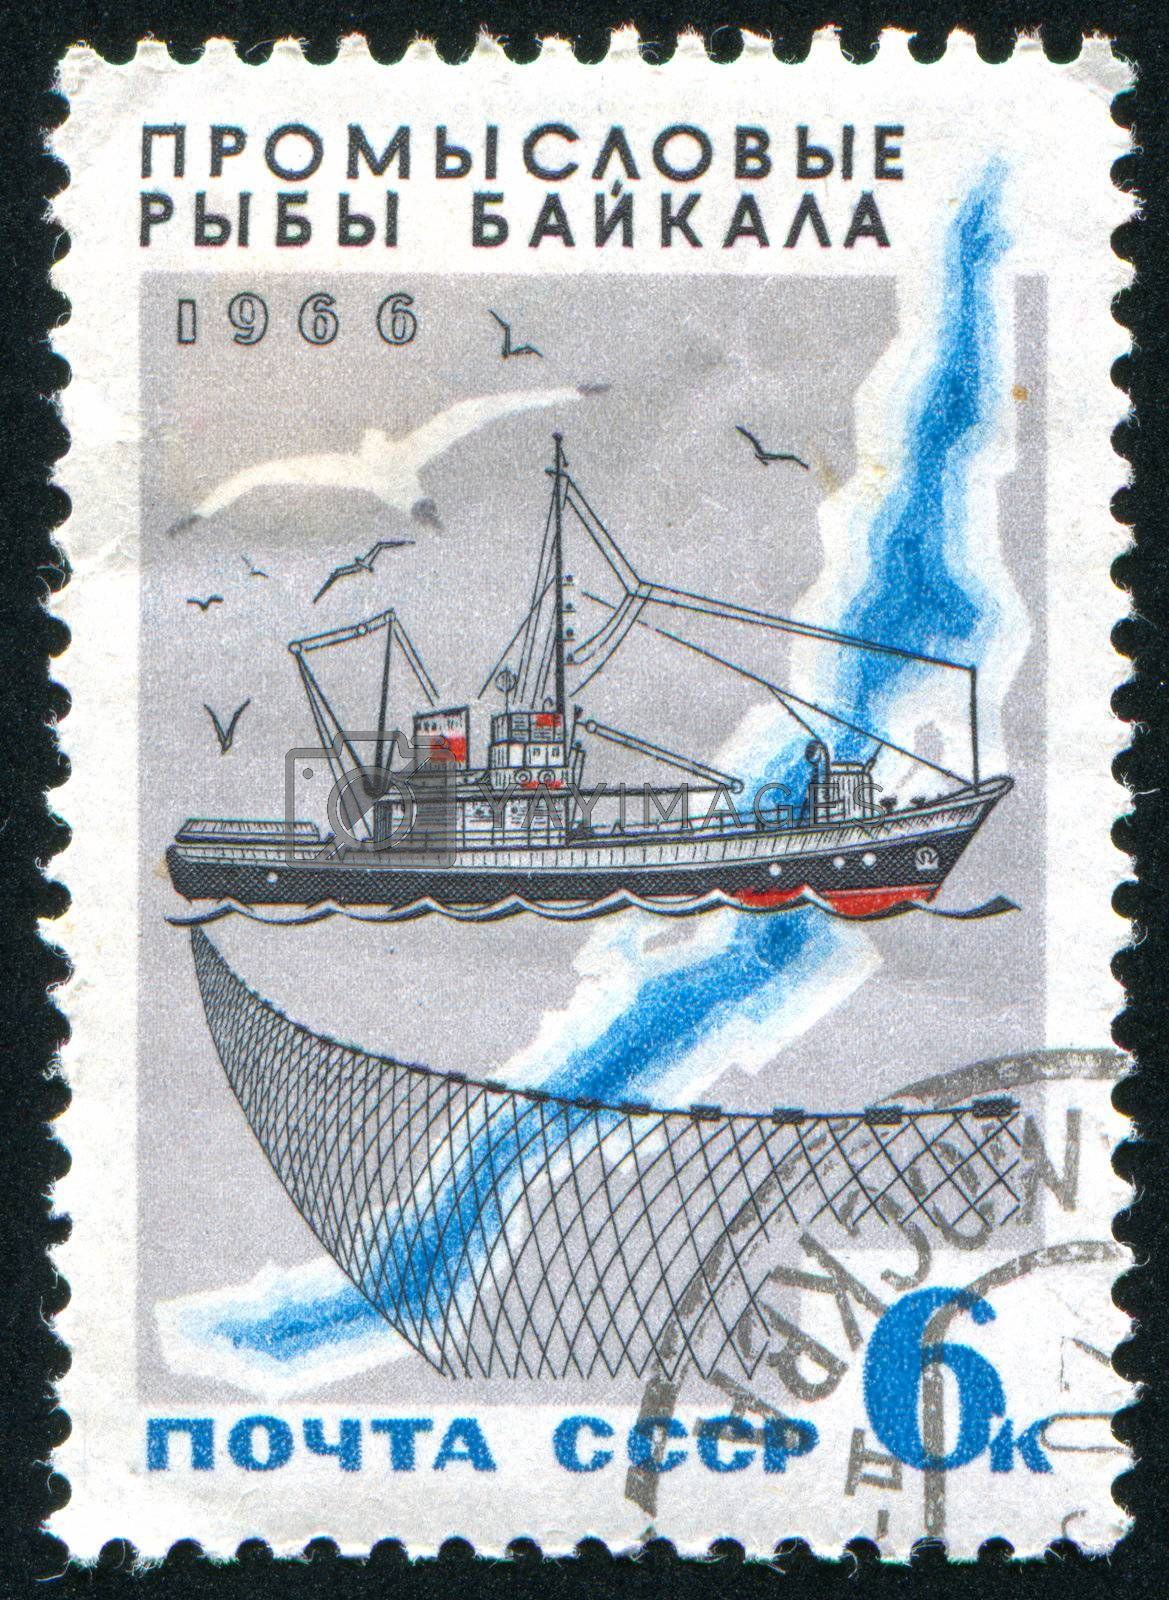 RUSSIA - CIRCA 1966: stamp printed by Russia, shows trawler, circa 1966.